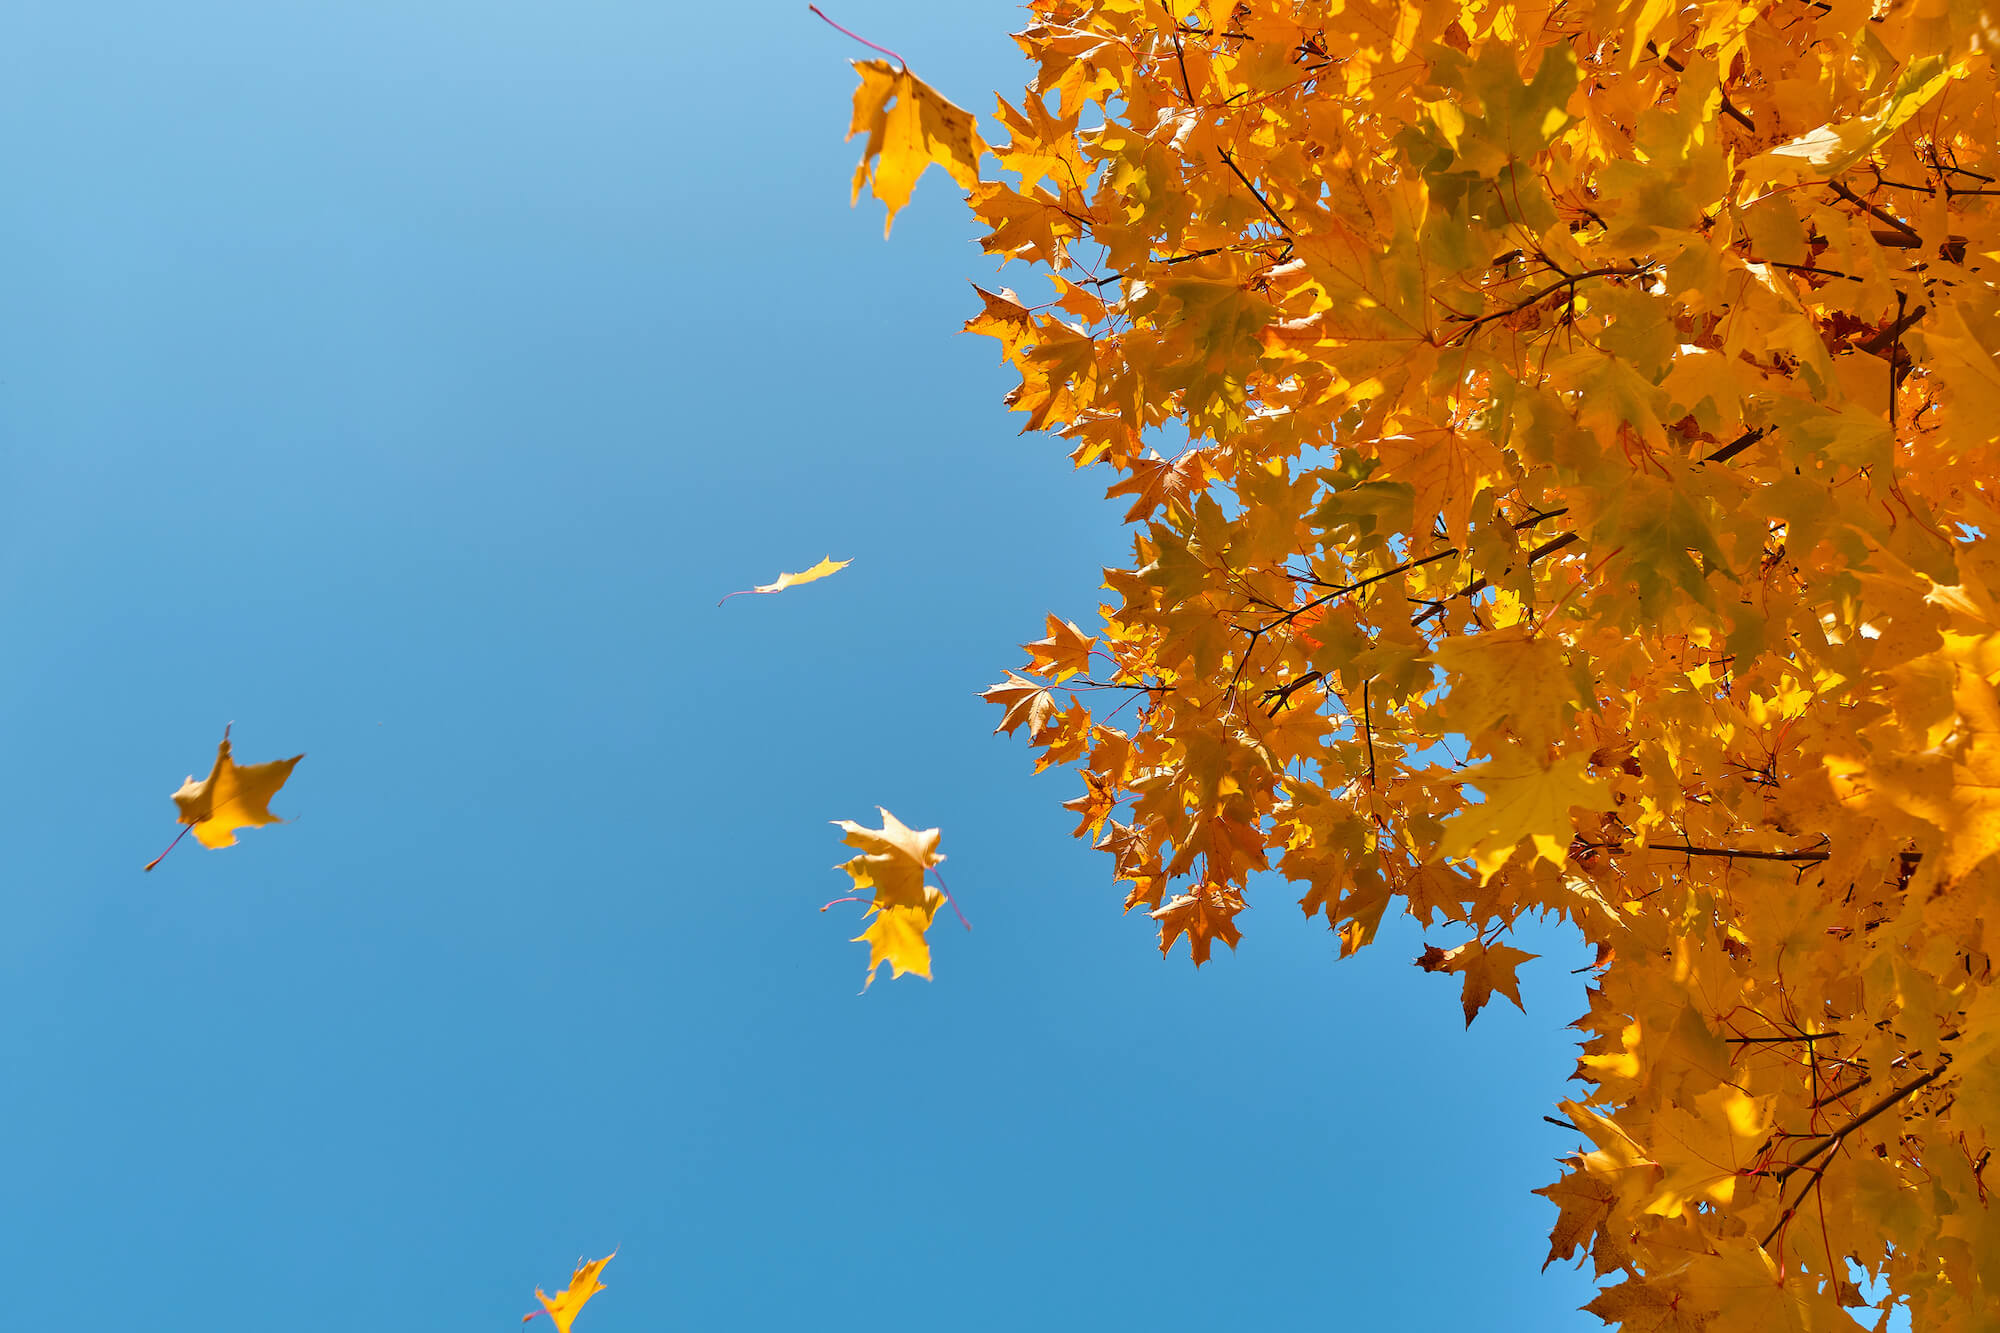 Gold autumn leaves against a blue sky